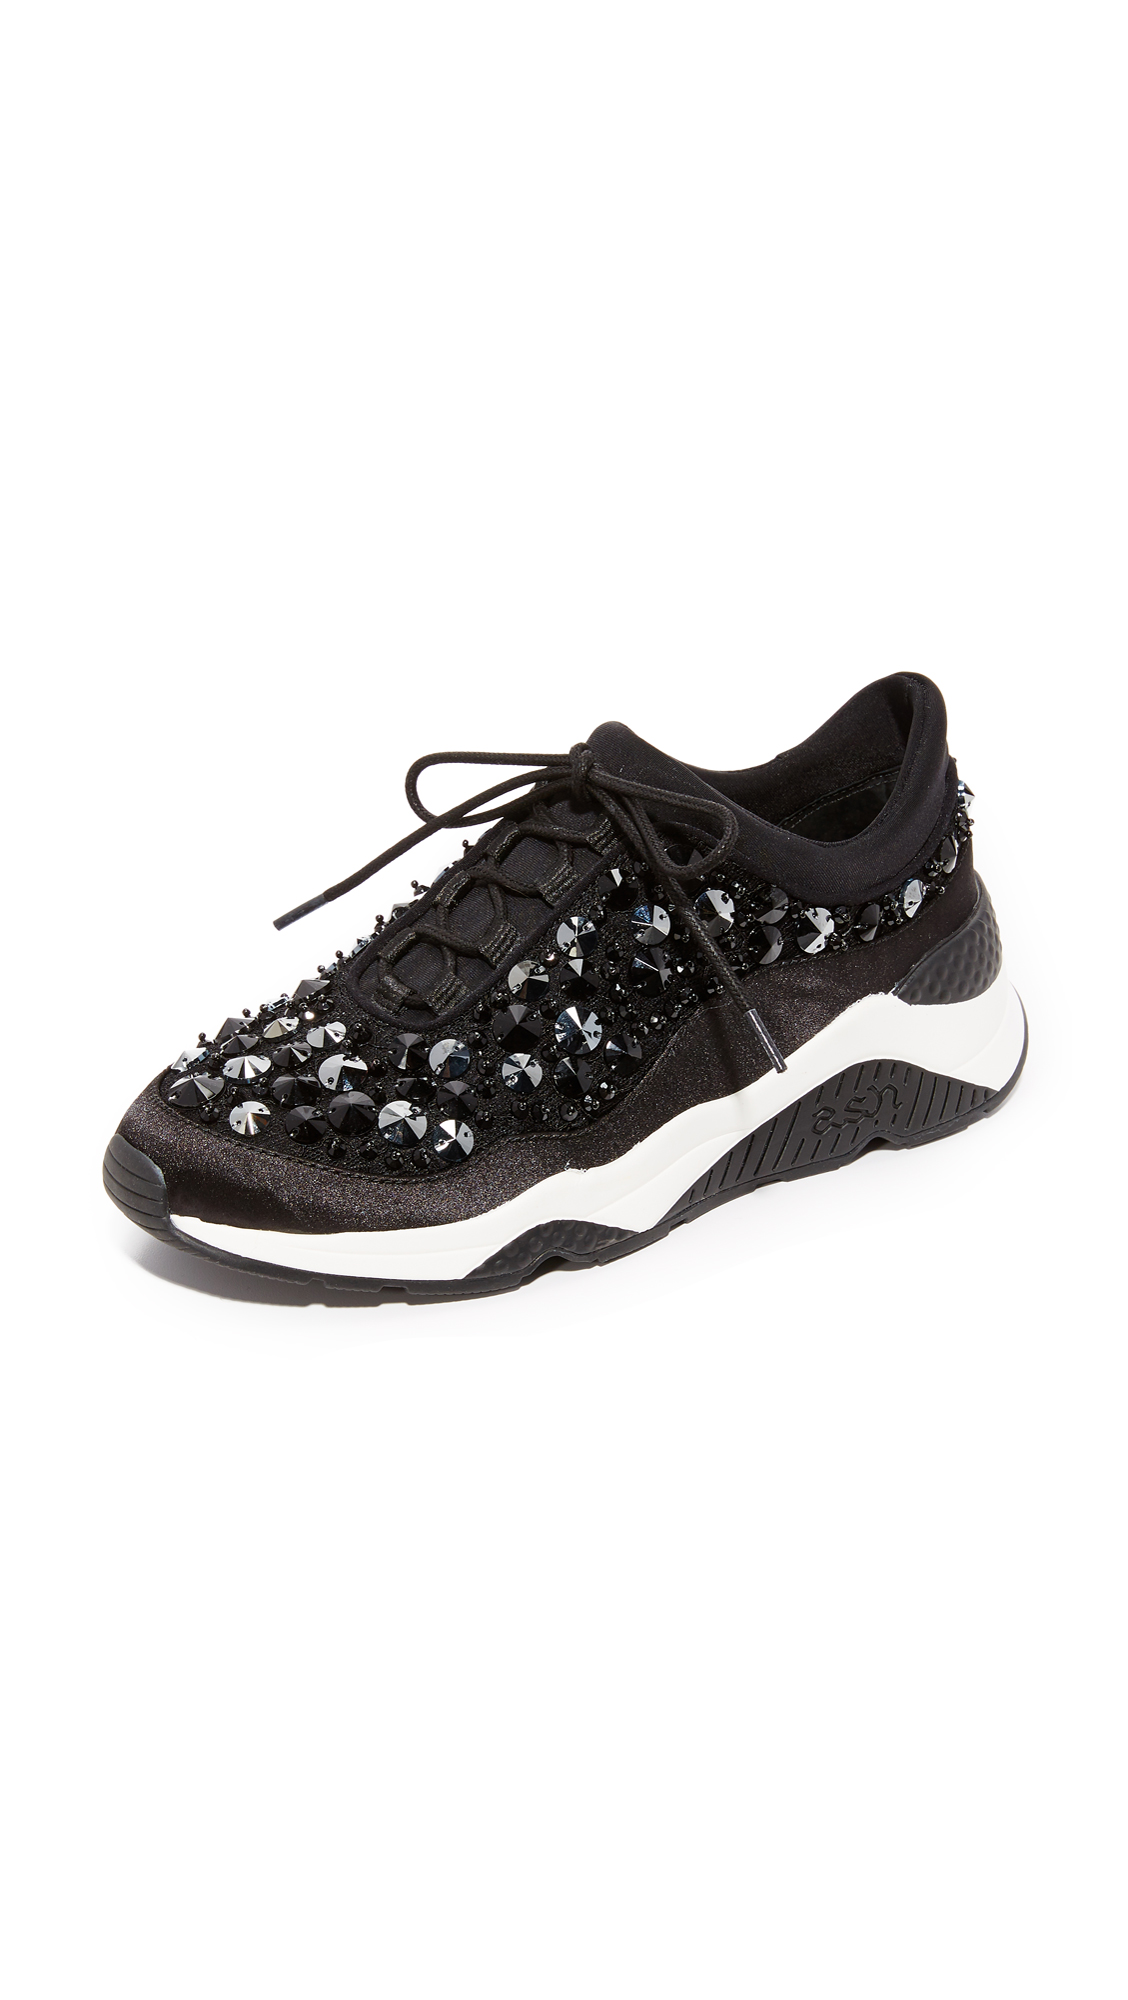 Ash Muse Beads Sneakers - Black at Shopbop